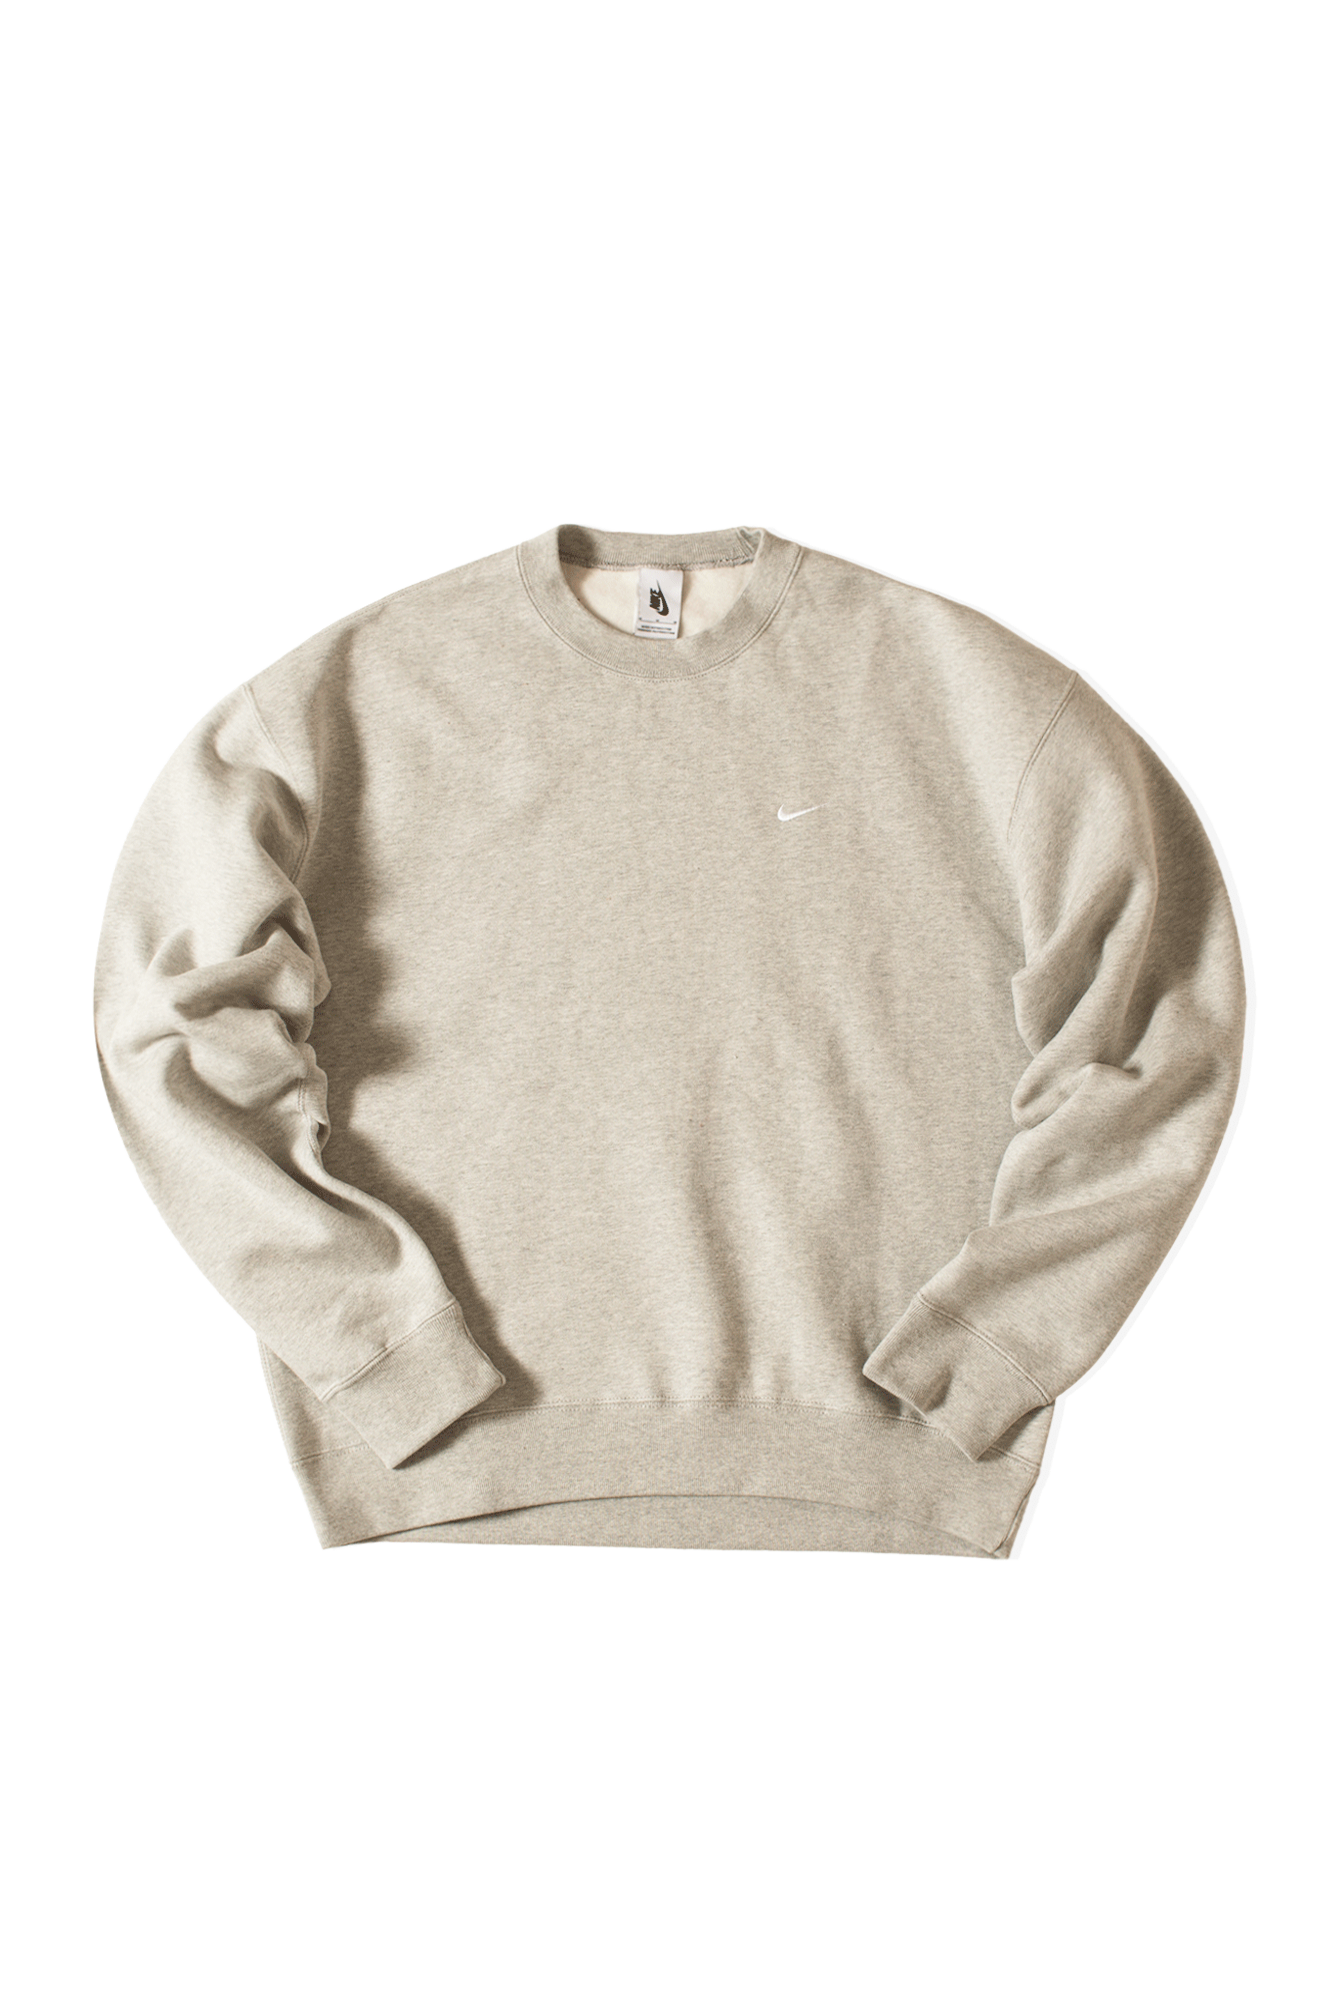 M Nrg Crewneck Sweatshirt Fleece Grey